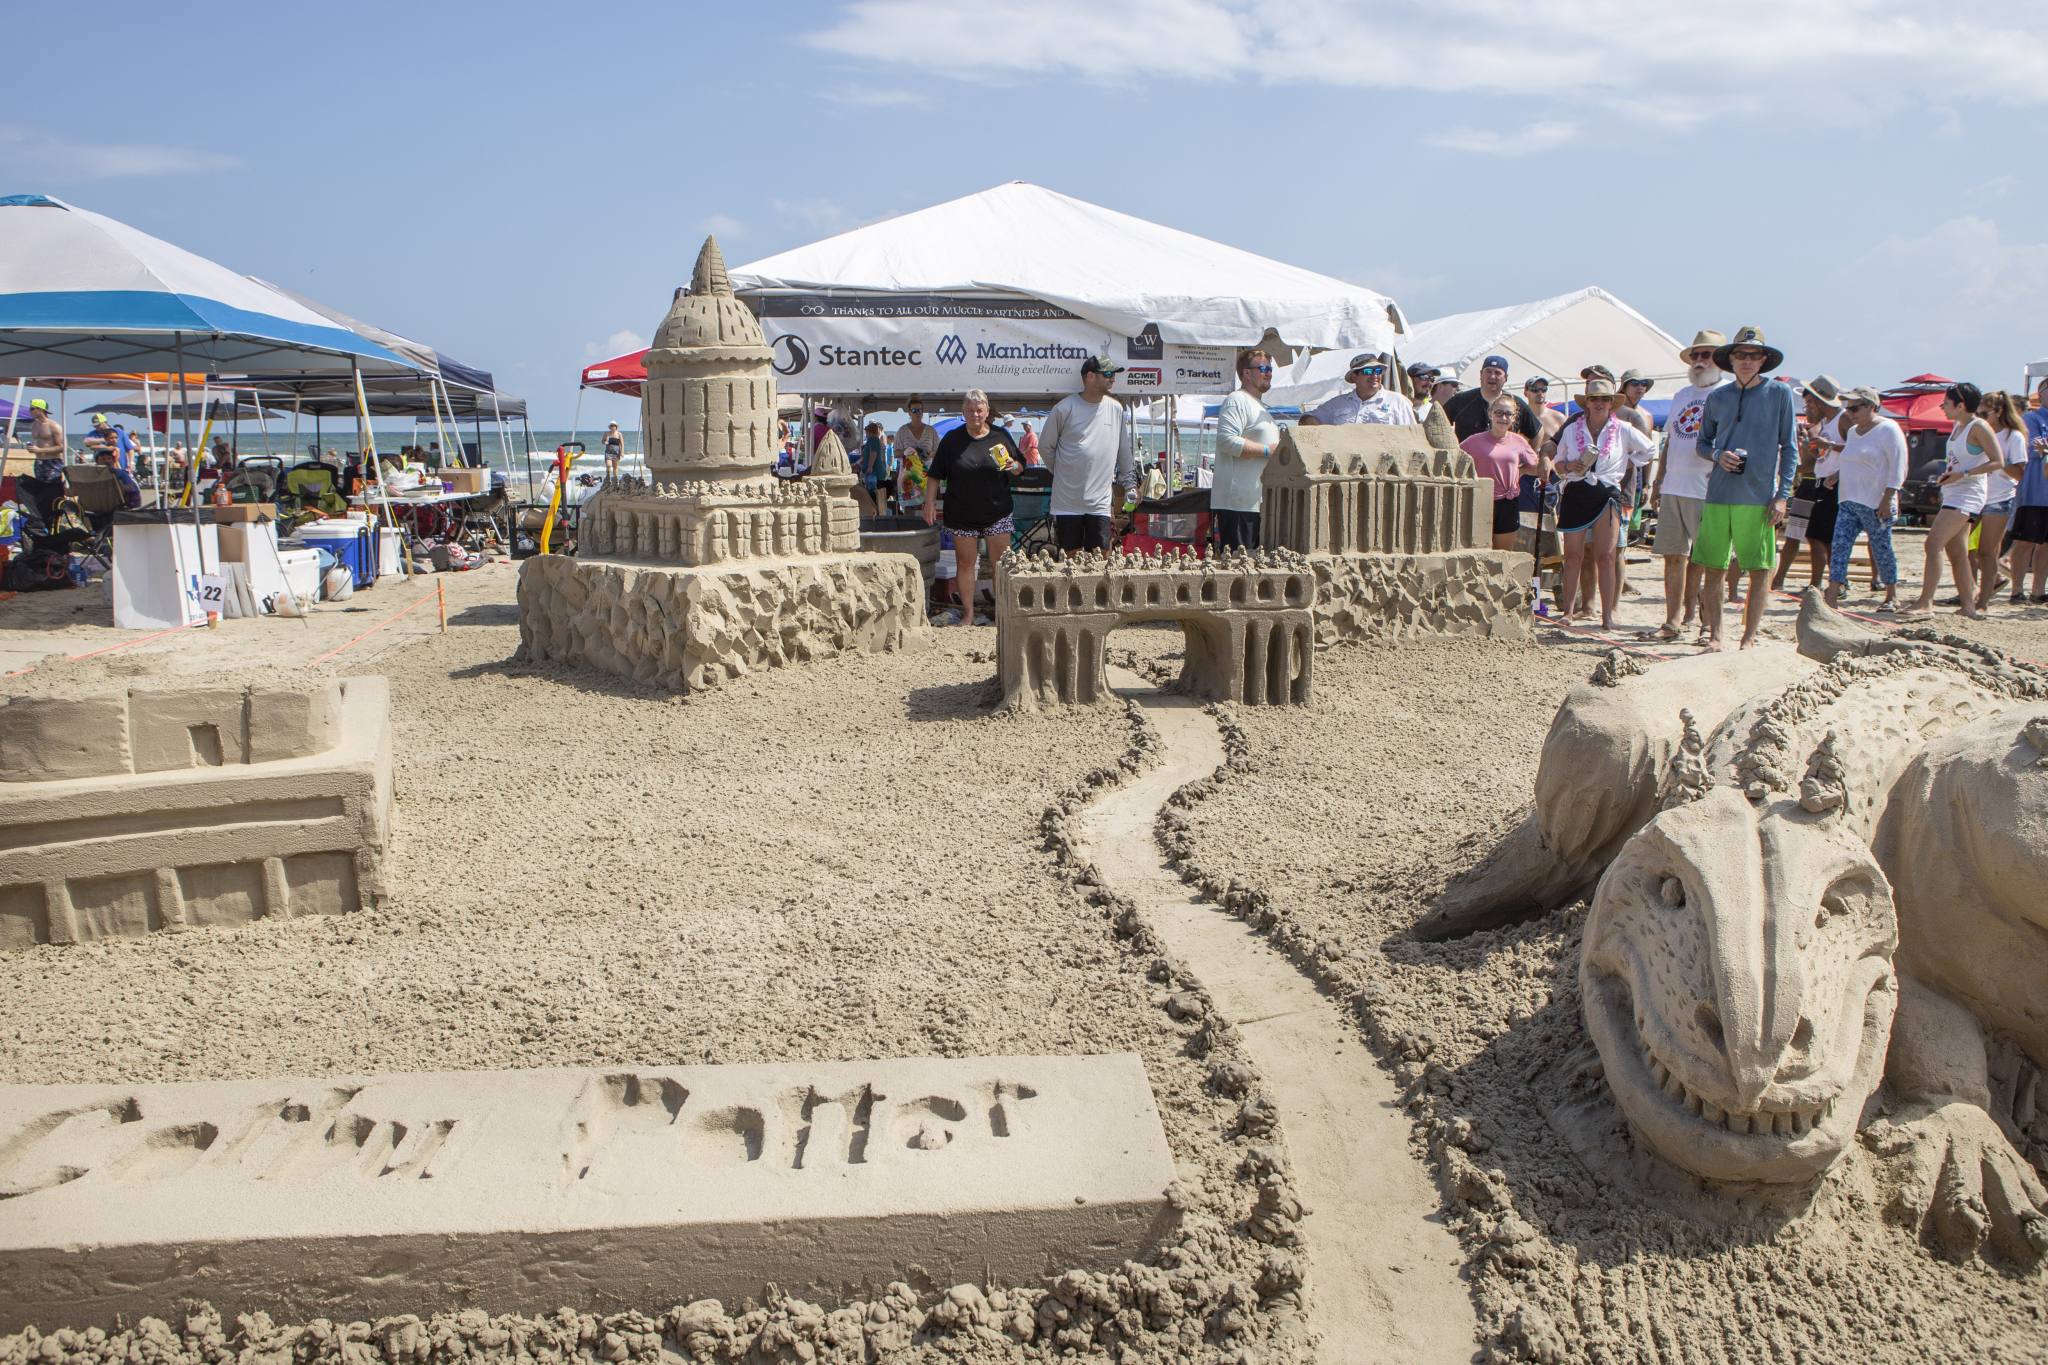 Popular Galveston Island sandcastle competition slated for Aug. 24, free to public